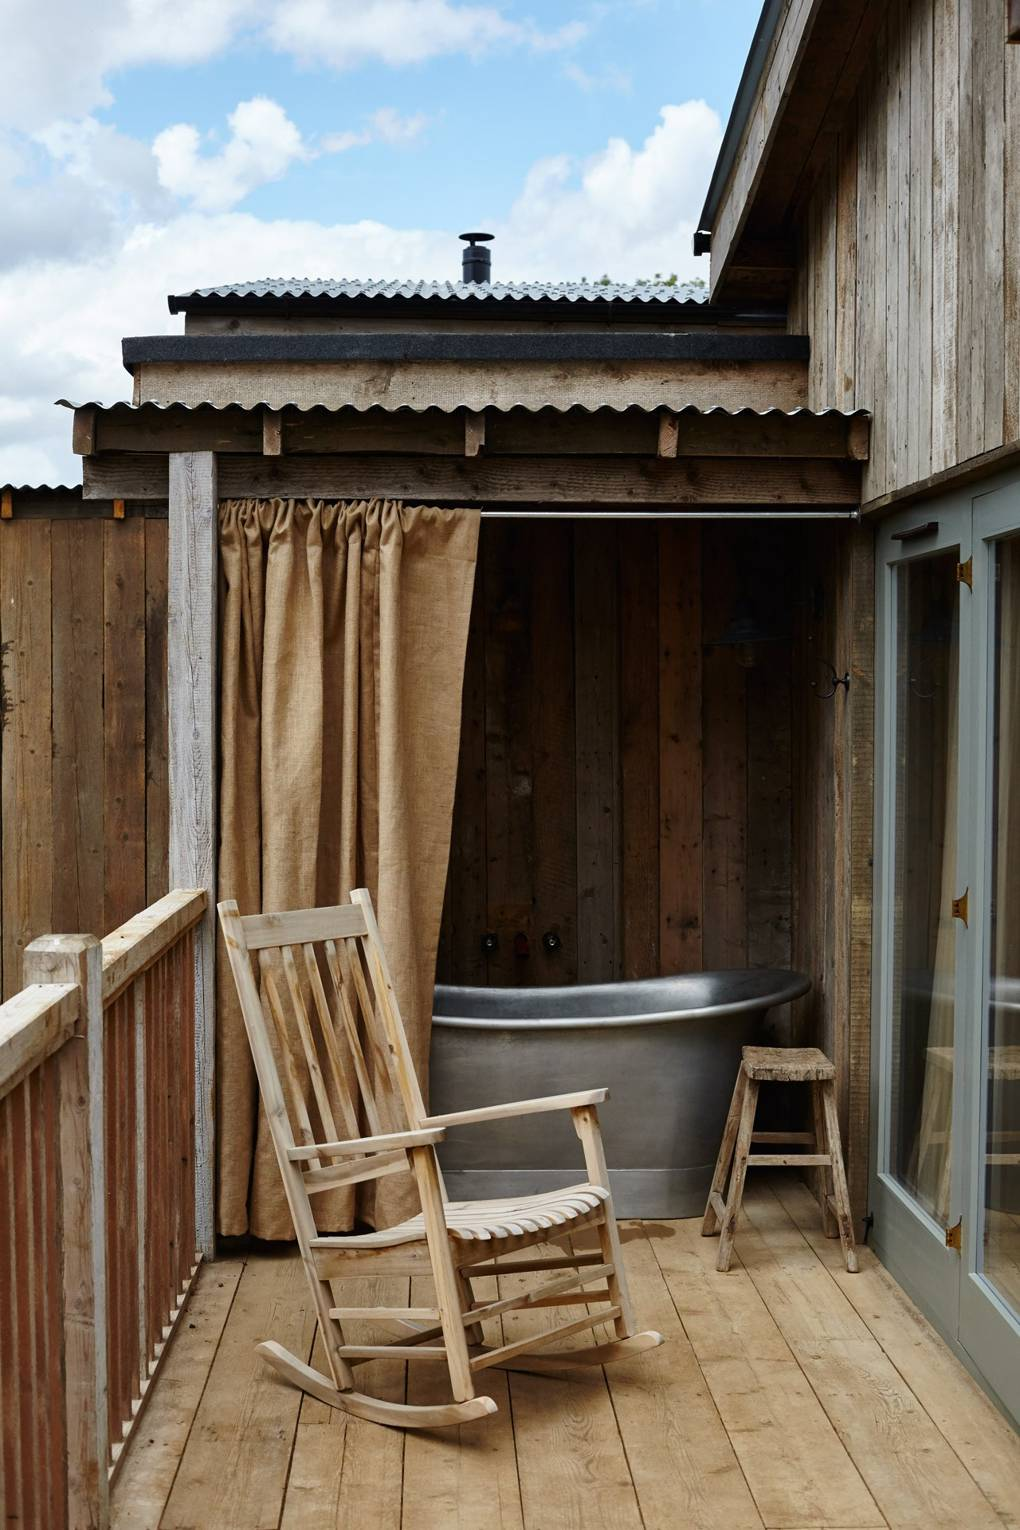 Soho Farmhouse Coolest Hotel In The Cotswolds Cn Traveller